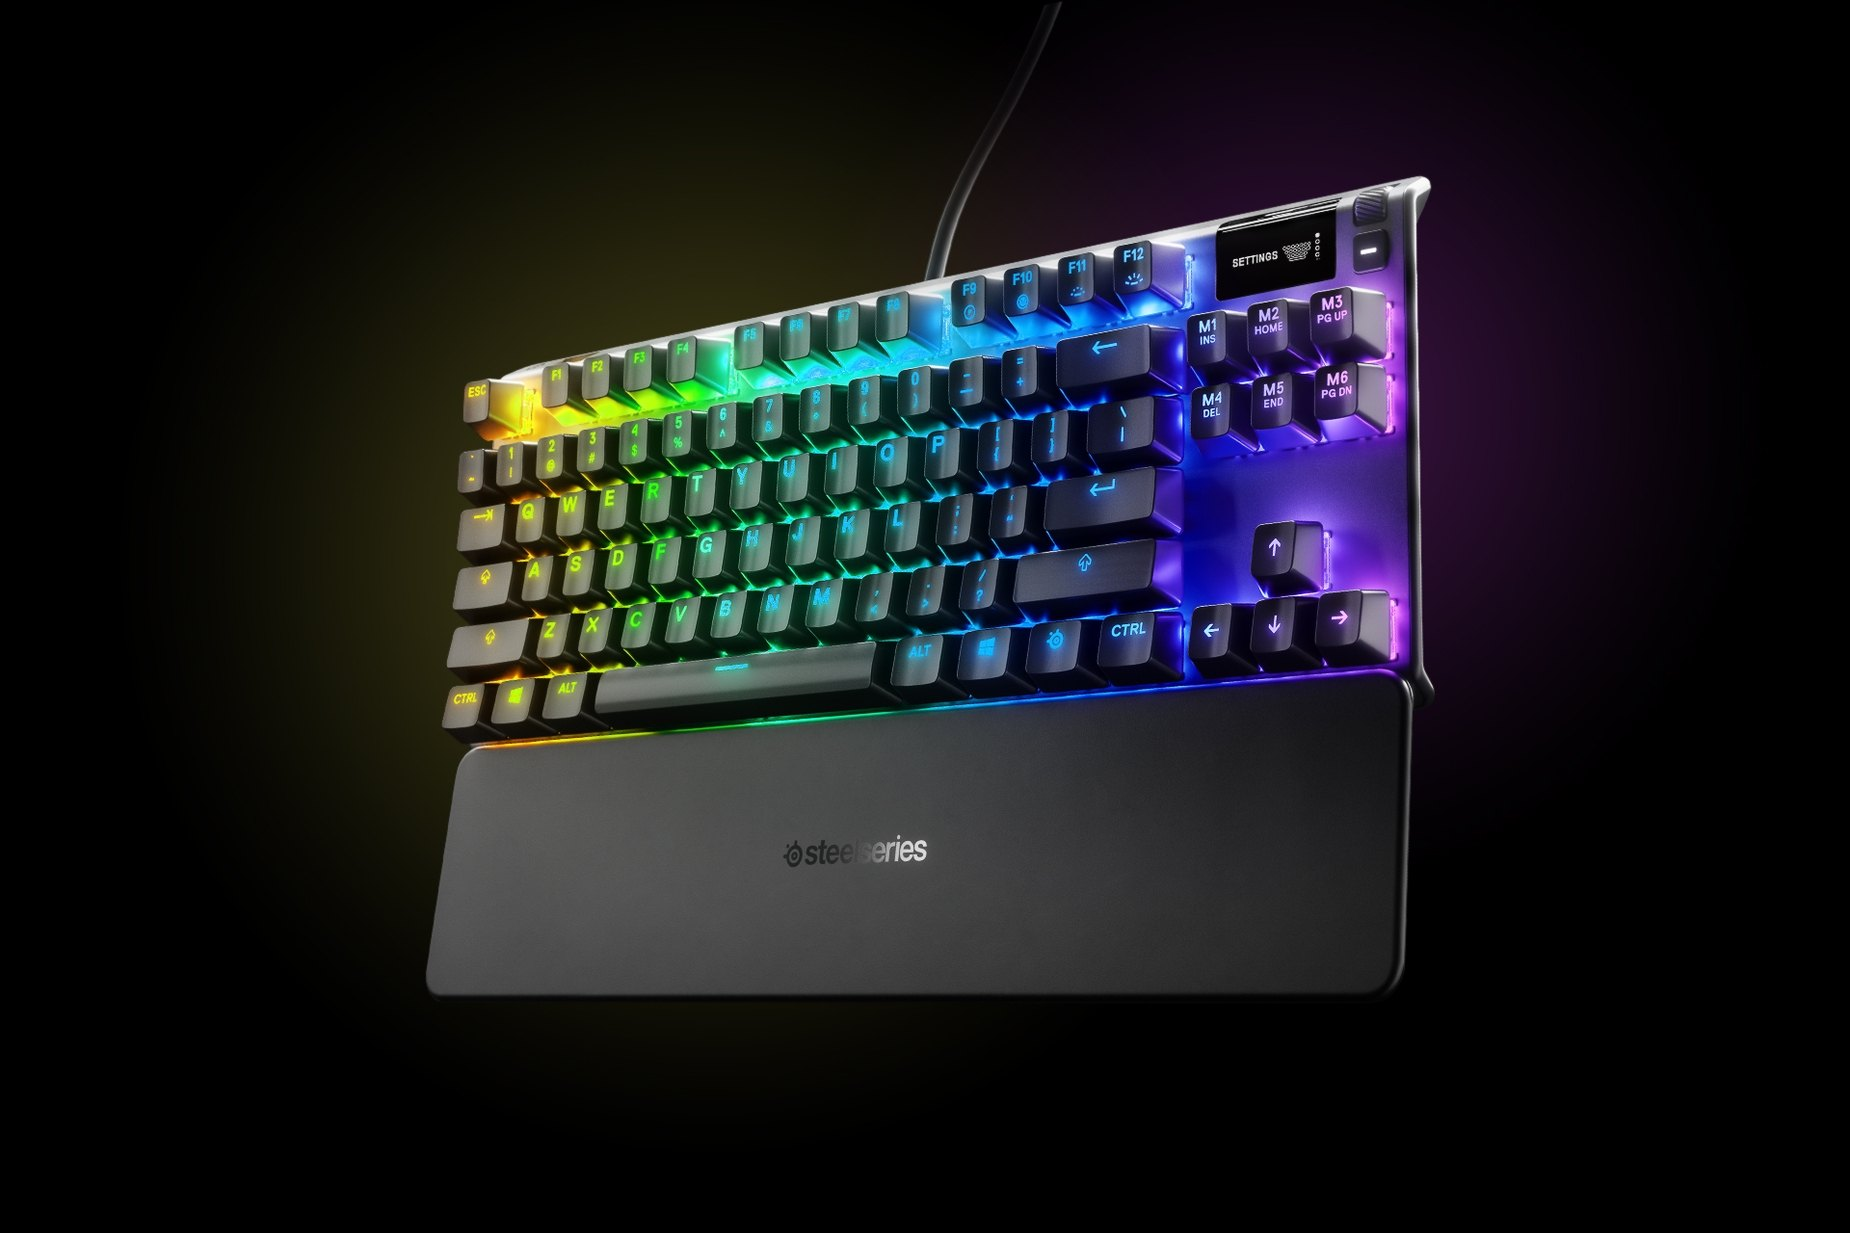 Japonca - Apex 7 TKL (Blue Switch) gaming keyboard with the illumination lit up on dark background, also shows the OLED screen and controls used to change settings and adjust audio